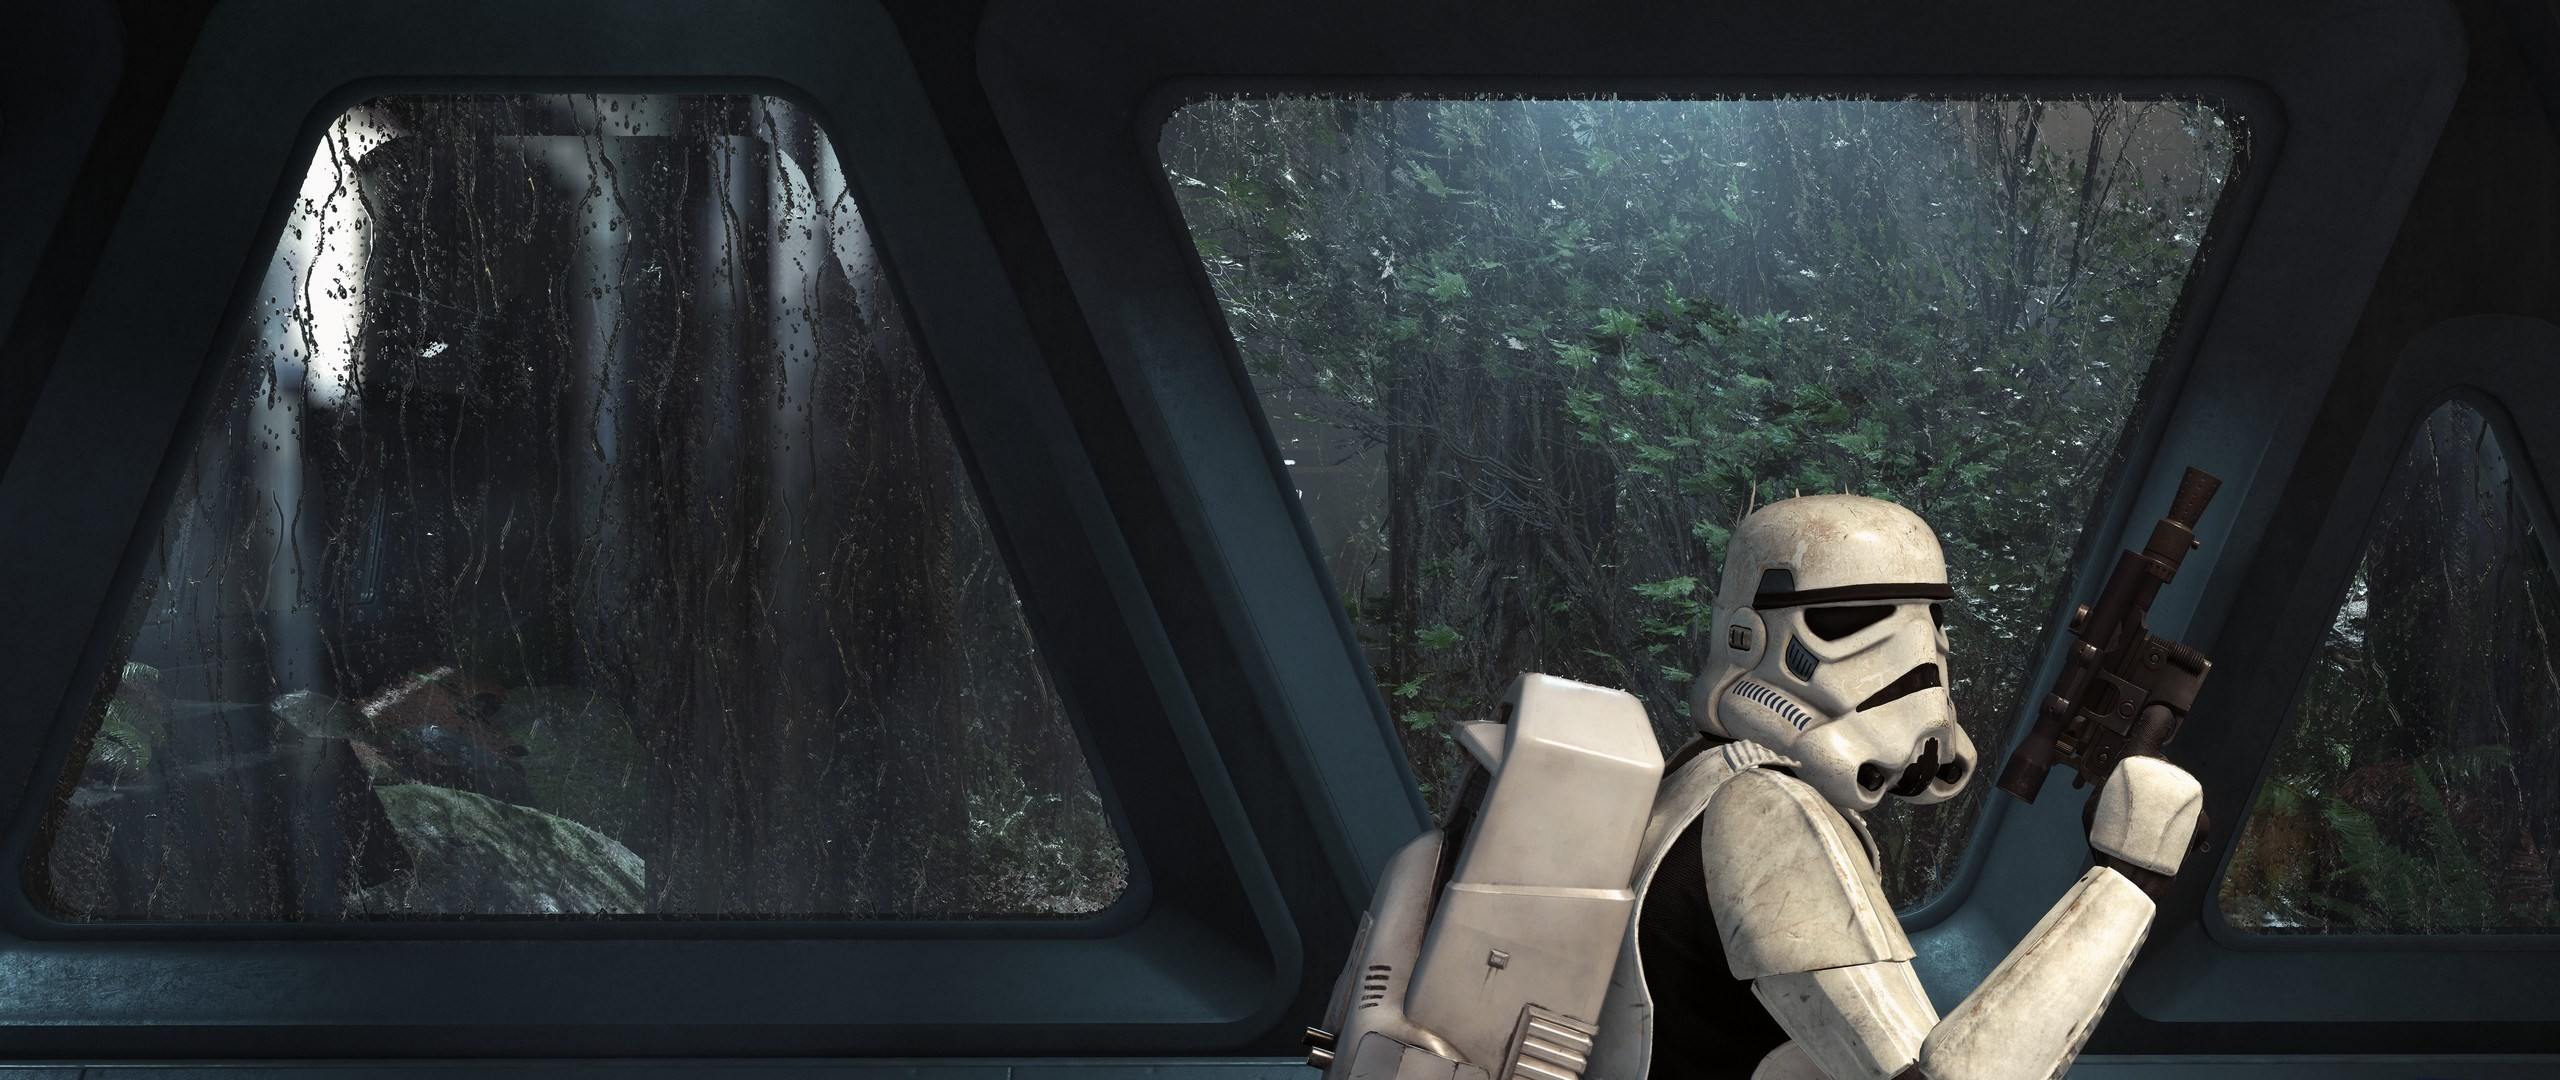 2560x1080 star wars battlefront 2015 wallpaper: images, walls, pics (Sherman Brook  )